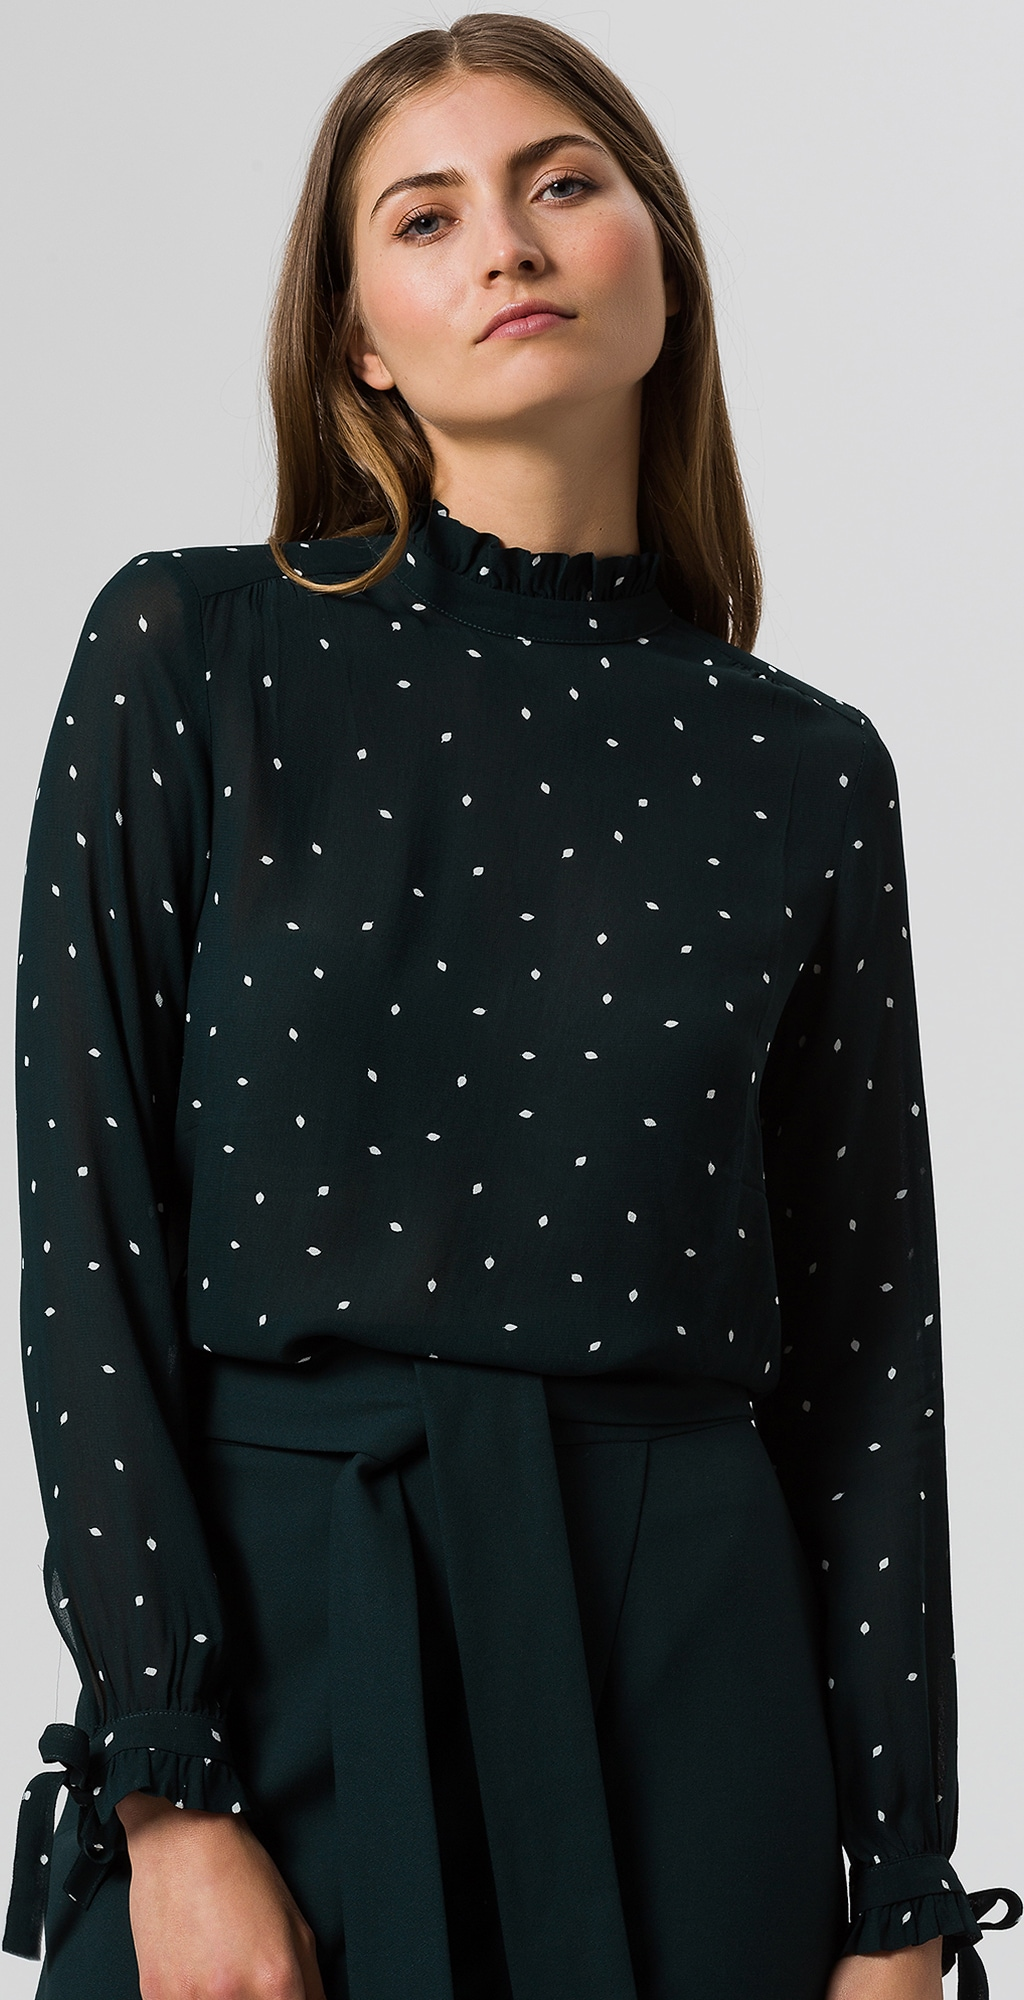 Blouse Designs Stand Collar : Ivy oak blouse stand up collar ruffle in groen